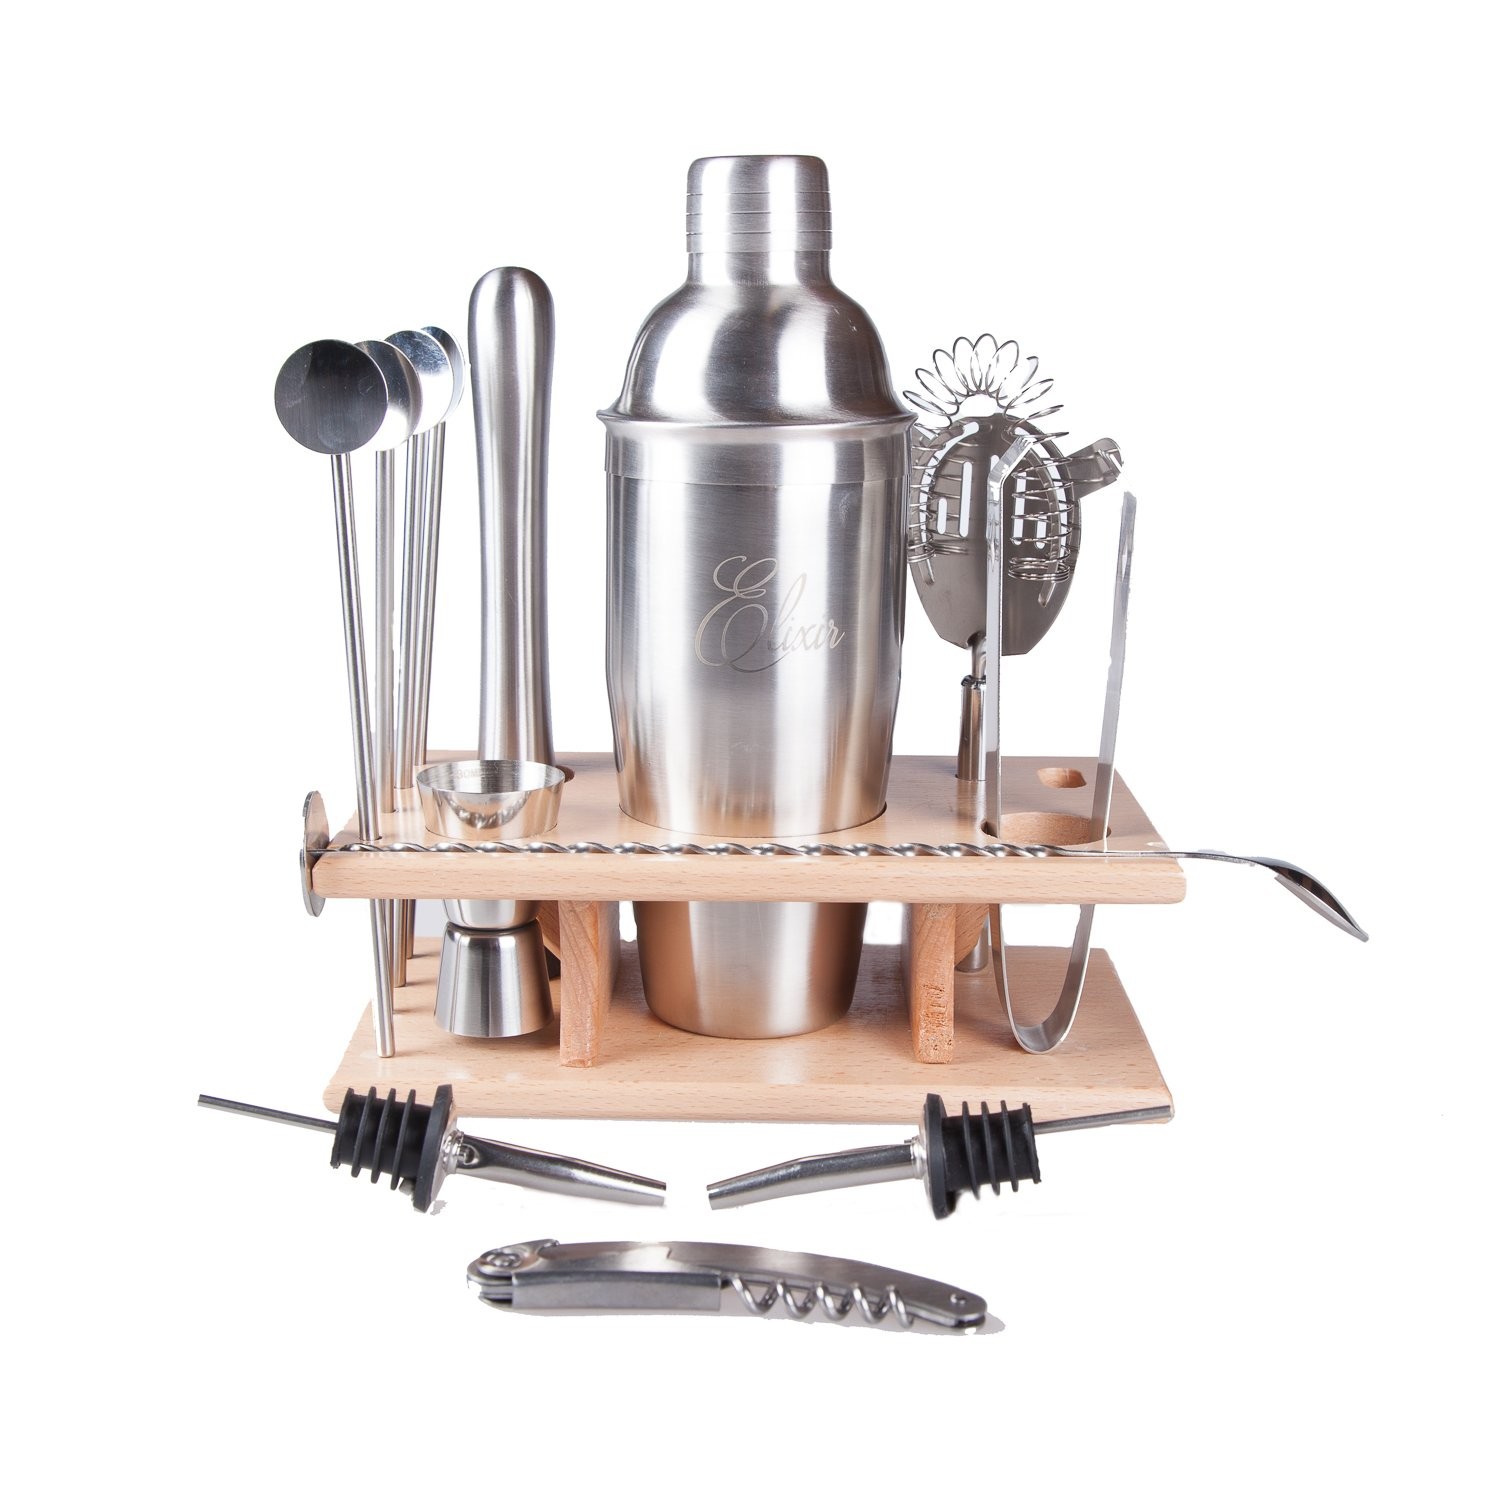 14 Piece Cocktail Bar Set 25 Ounce Shaker Stainless Steel With Beech Stand 4 Straw Spoons Muddler Double Sided Jigger Strainer 2 Pourers Mixing Spoon Bottle Opener Corkscrew Ice Tongs Elixir